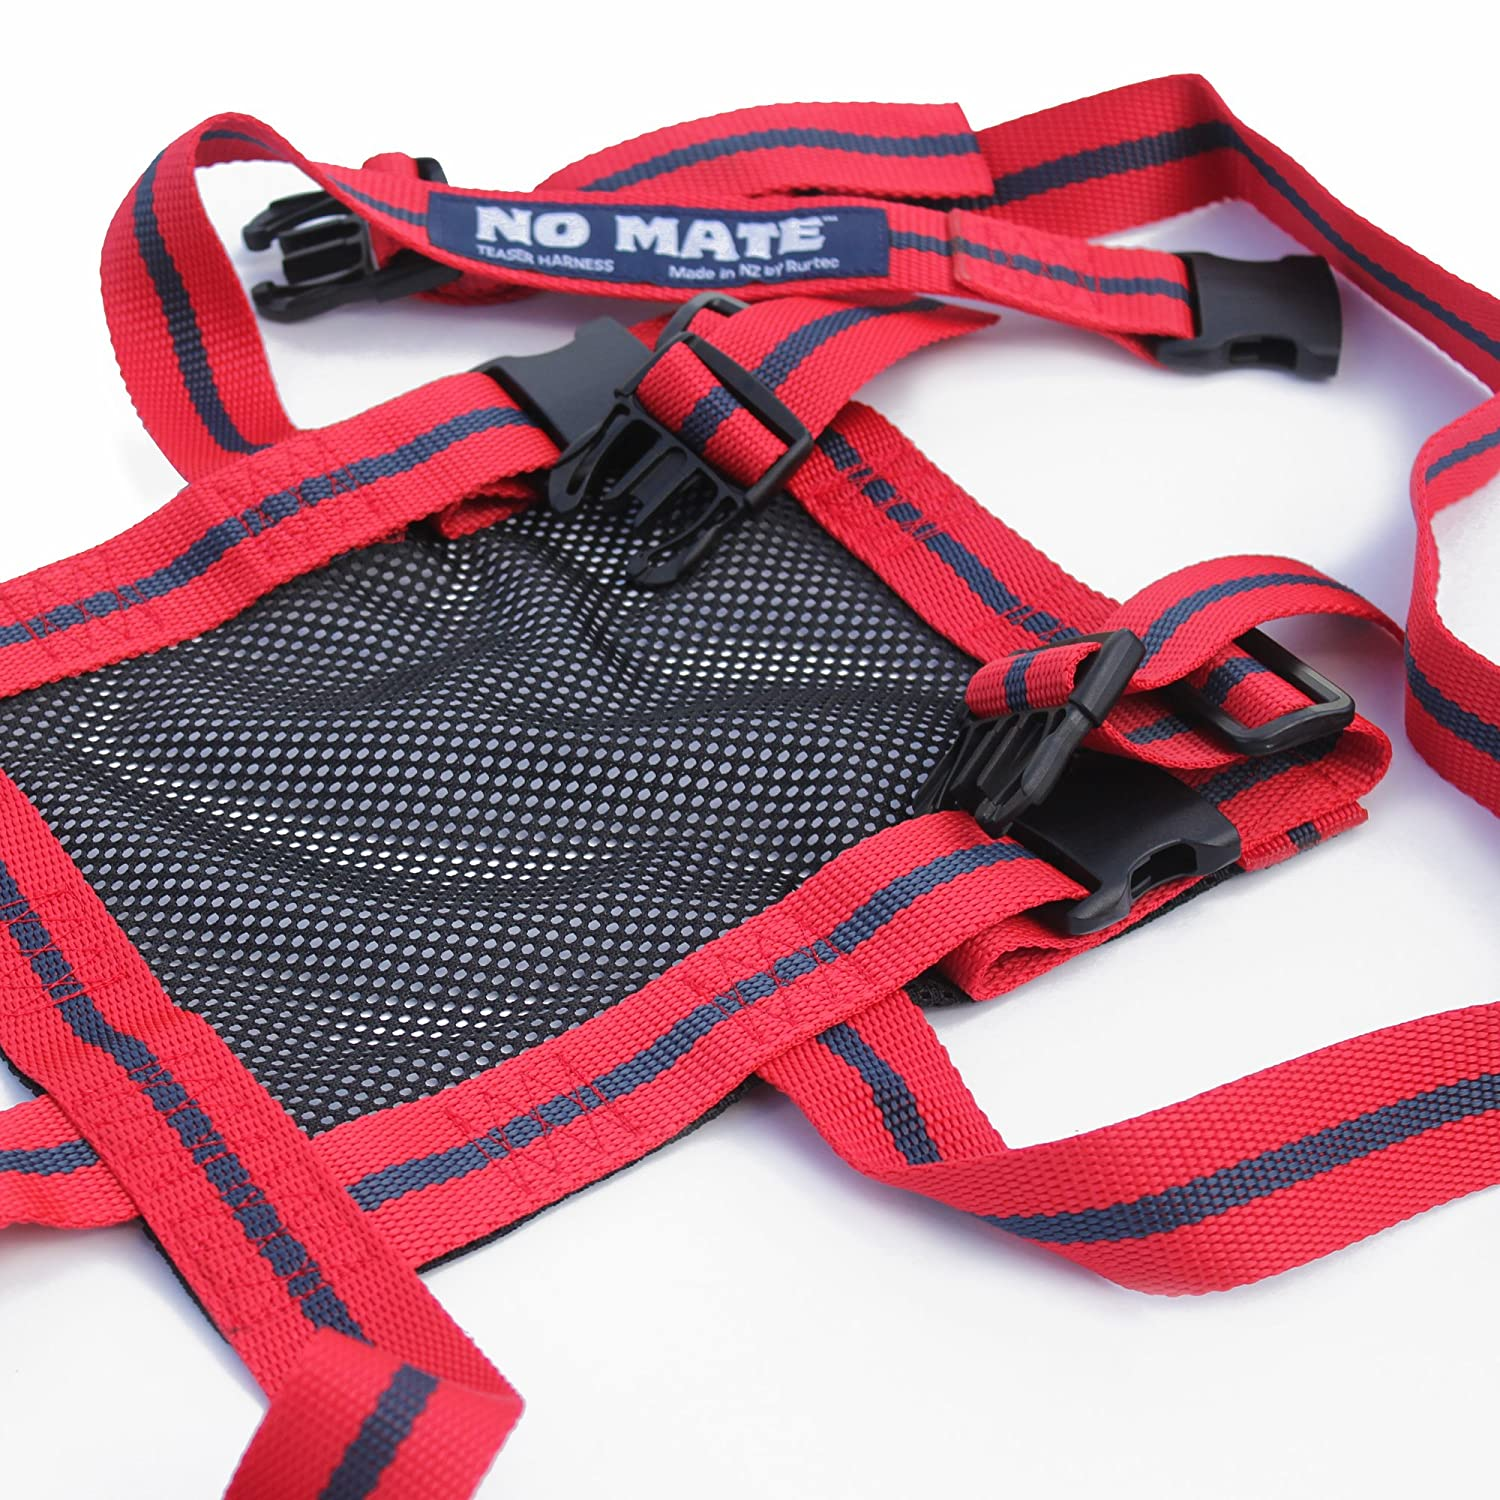 NO MATE Teaser Harness by Rurtec, Sheep & Goat Breeding Tool